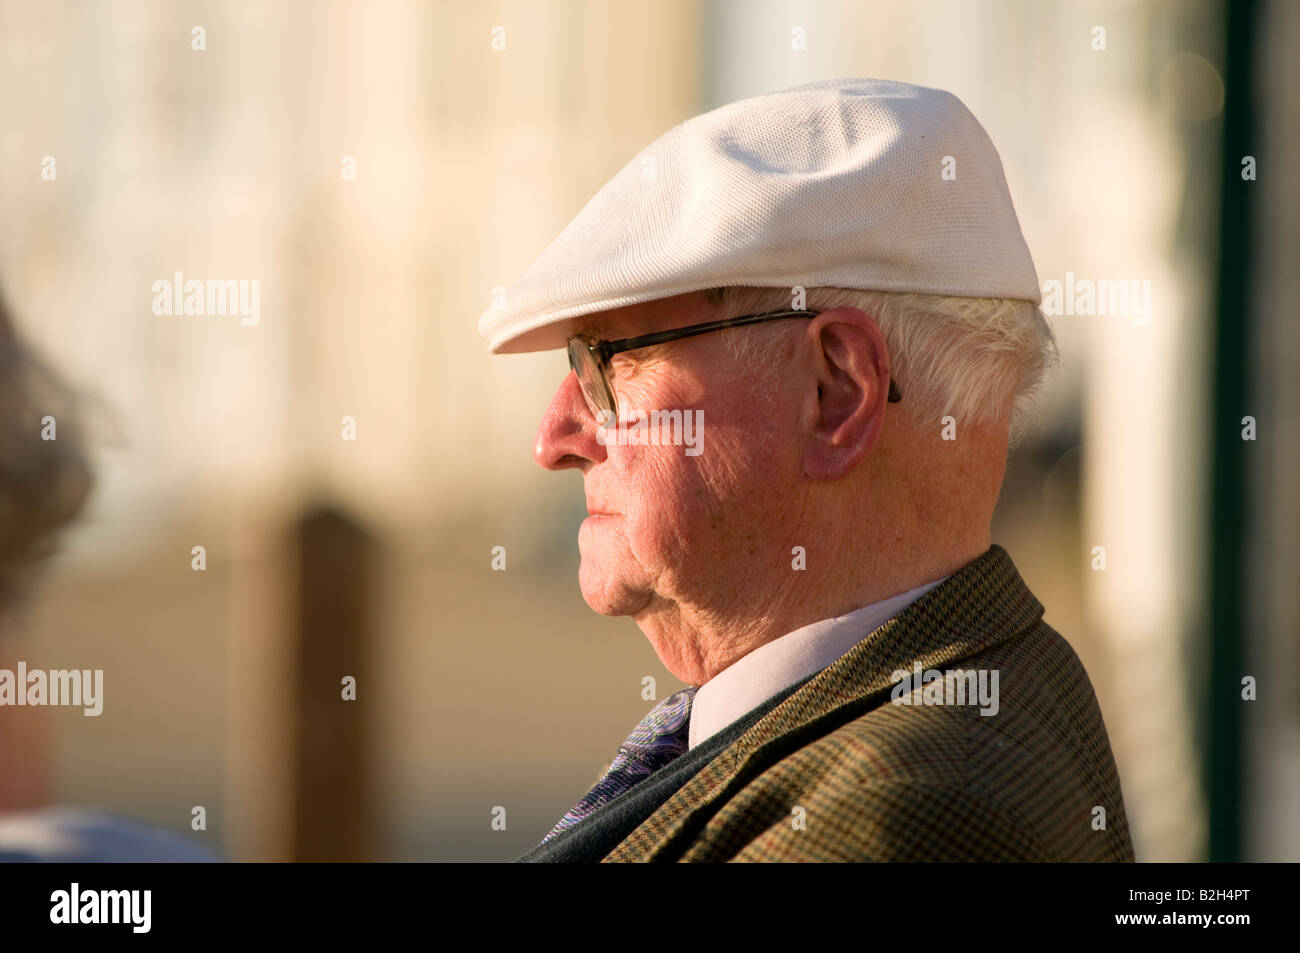 Old man wearing flat white cap and spectacles summer evening in profile UK 3881175336a